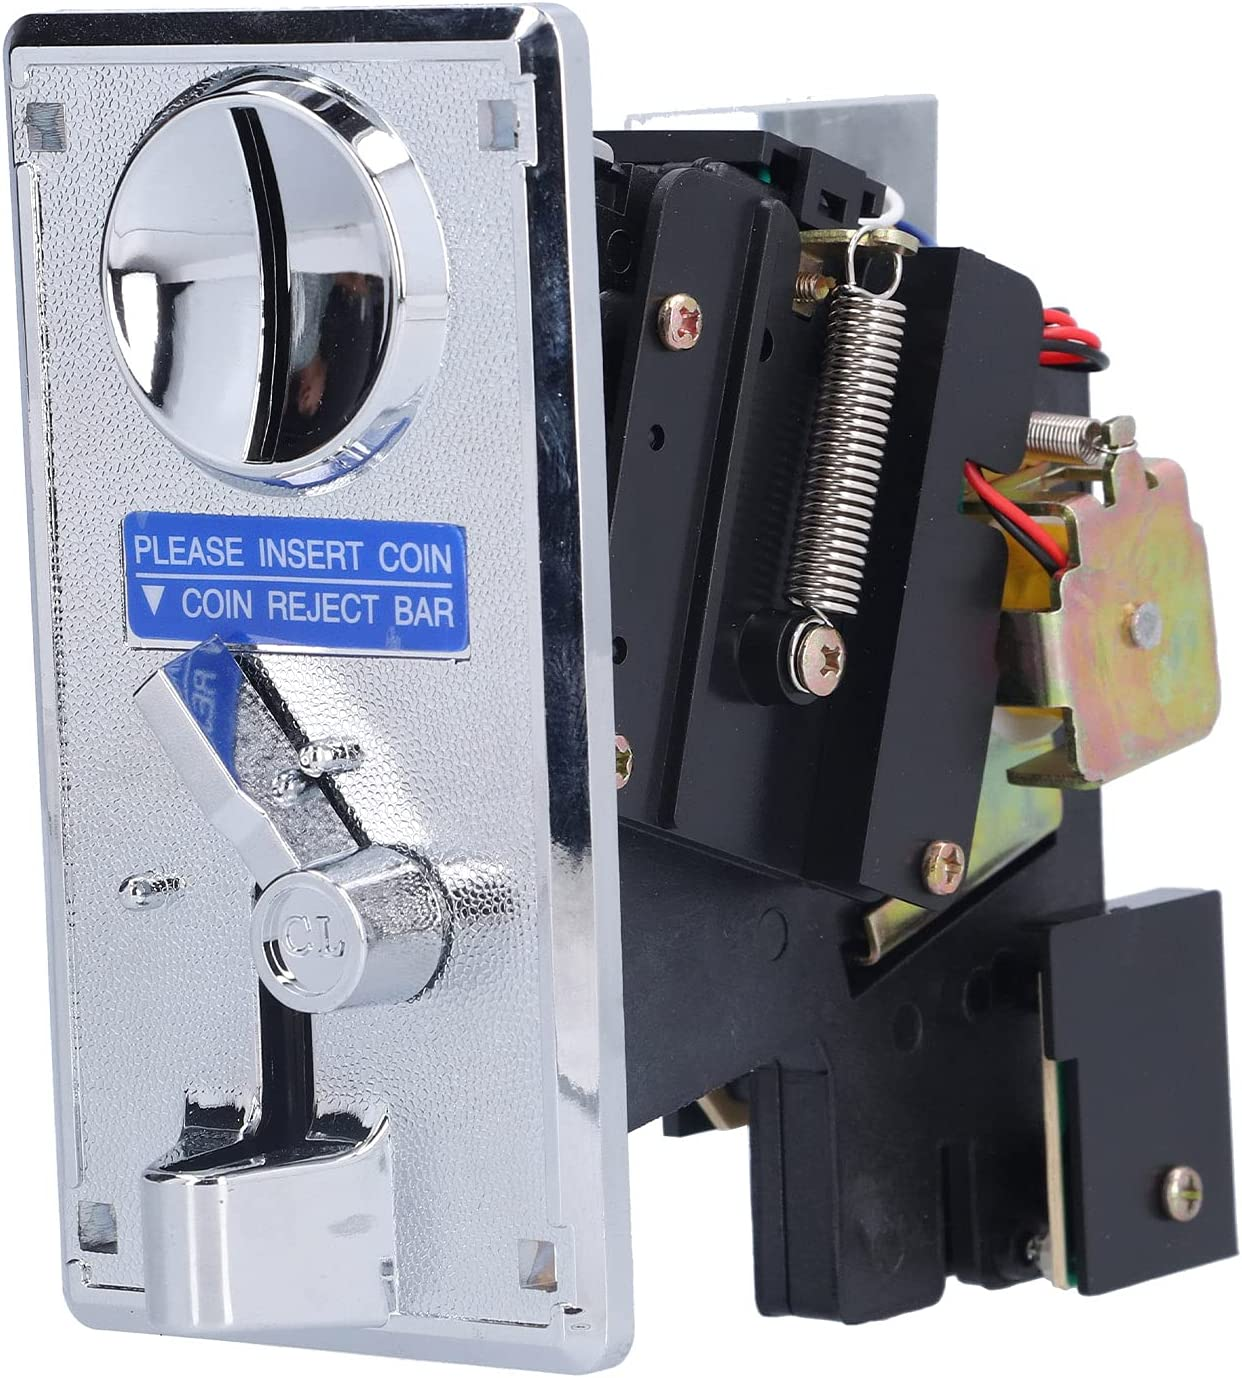 Hilitand Coin Acceptor CPU Selector Electronic Max 67% OFF Comparison NEW before selling ☆